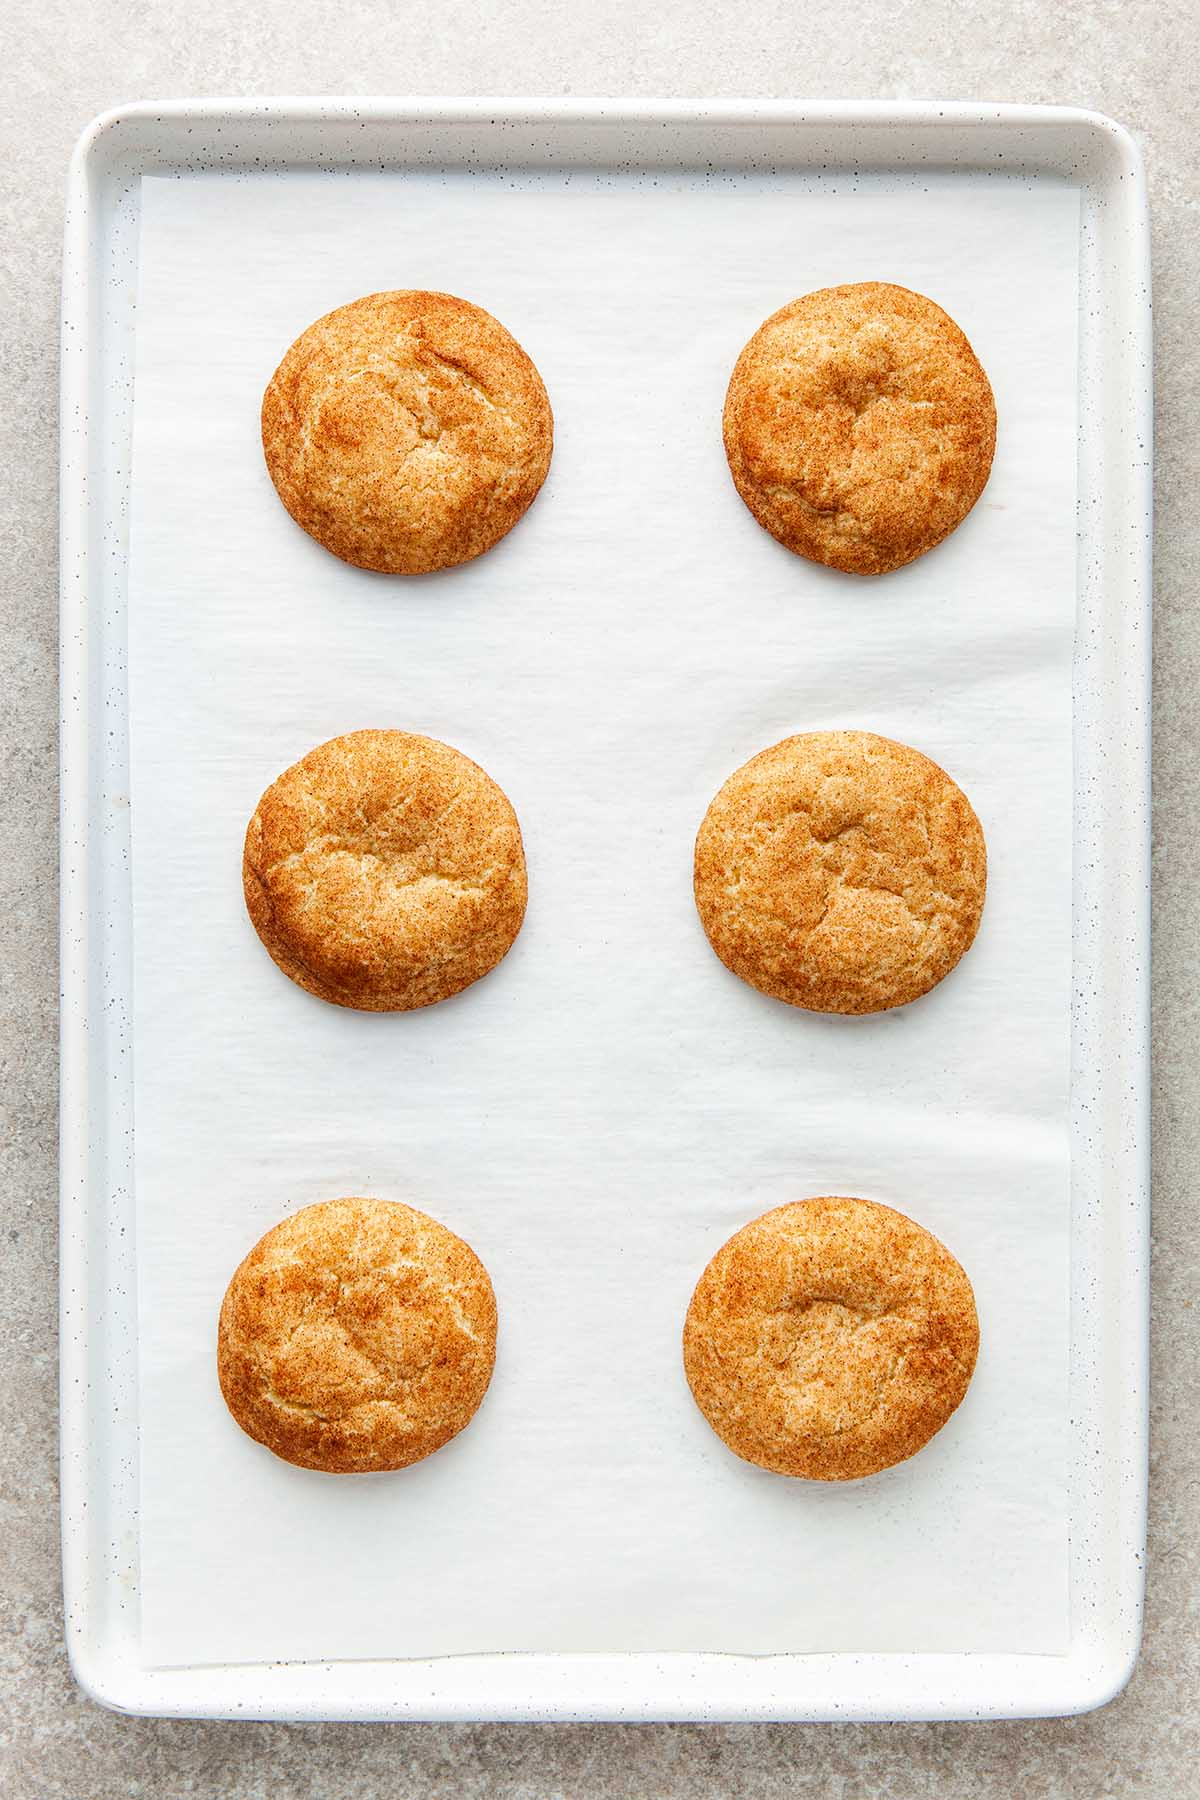 A pan of six baked snickerdoodles without cream of tartar.